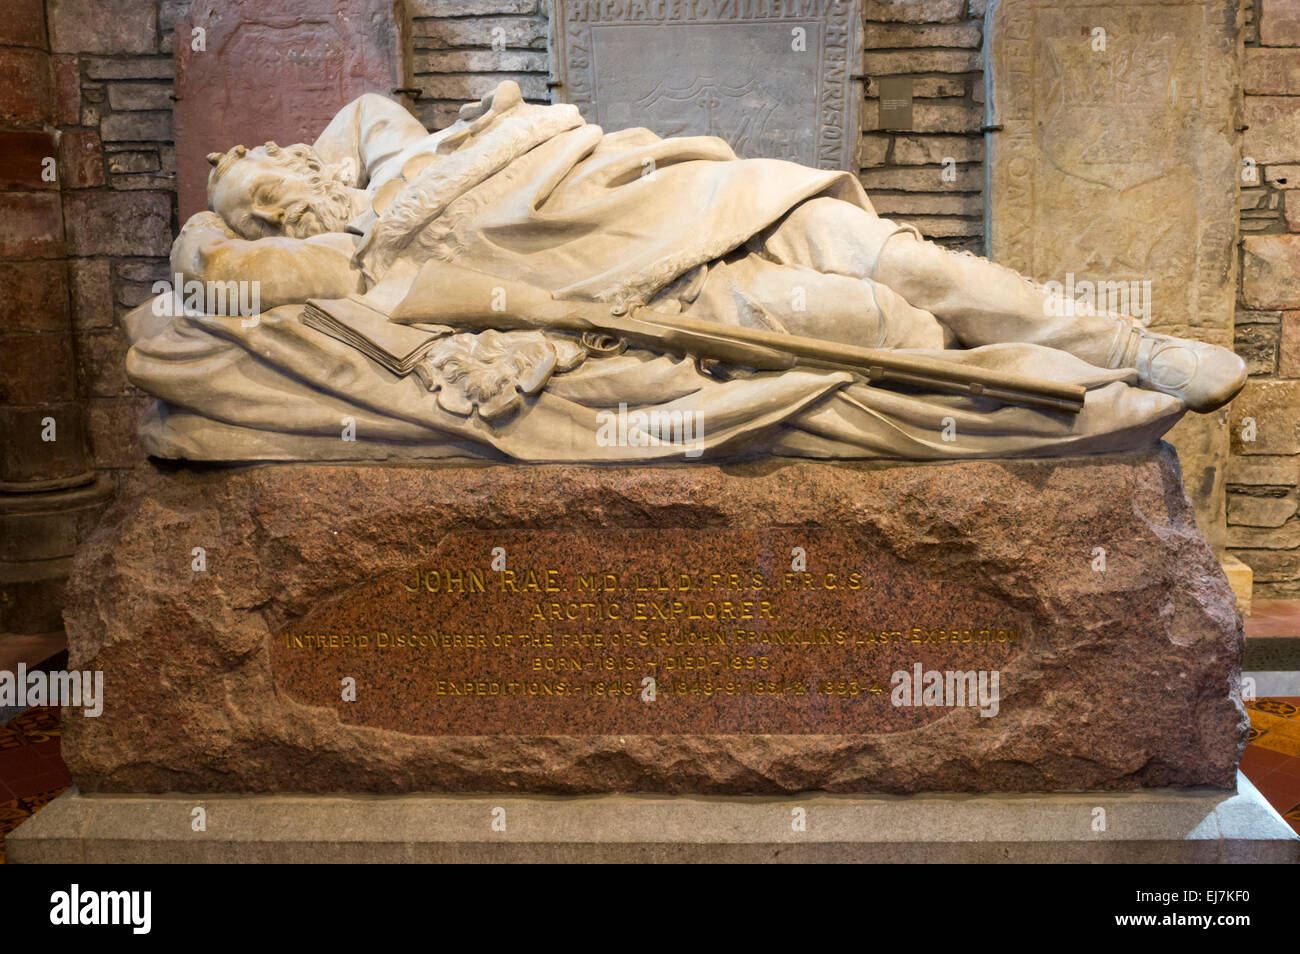 The memorial to John Rae in St Magnus Cathedral, Kirkwall, Orkney. SEE DETAILS IN DESCRIPTION. - Stock Image